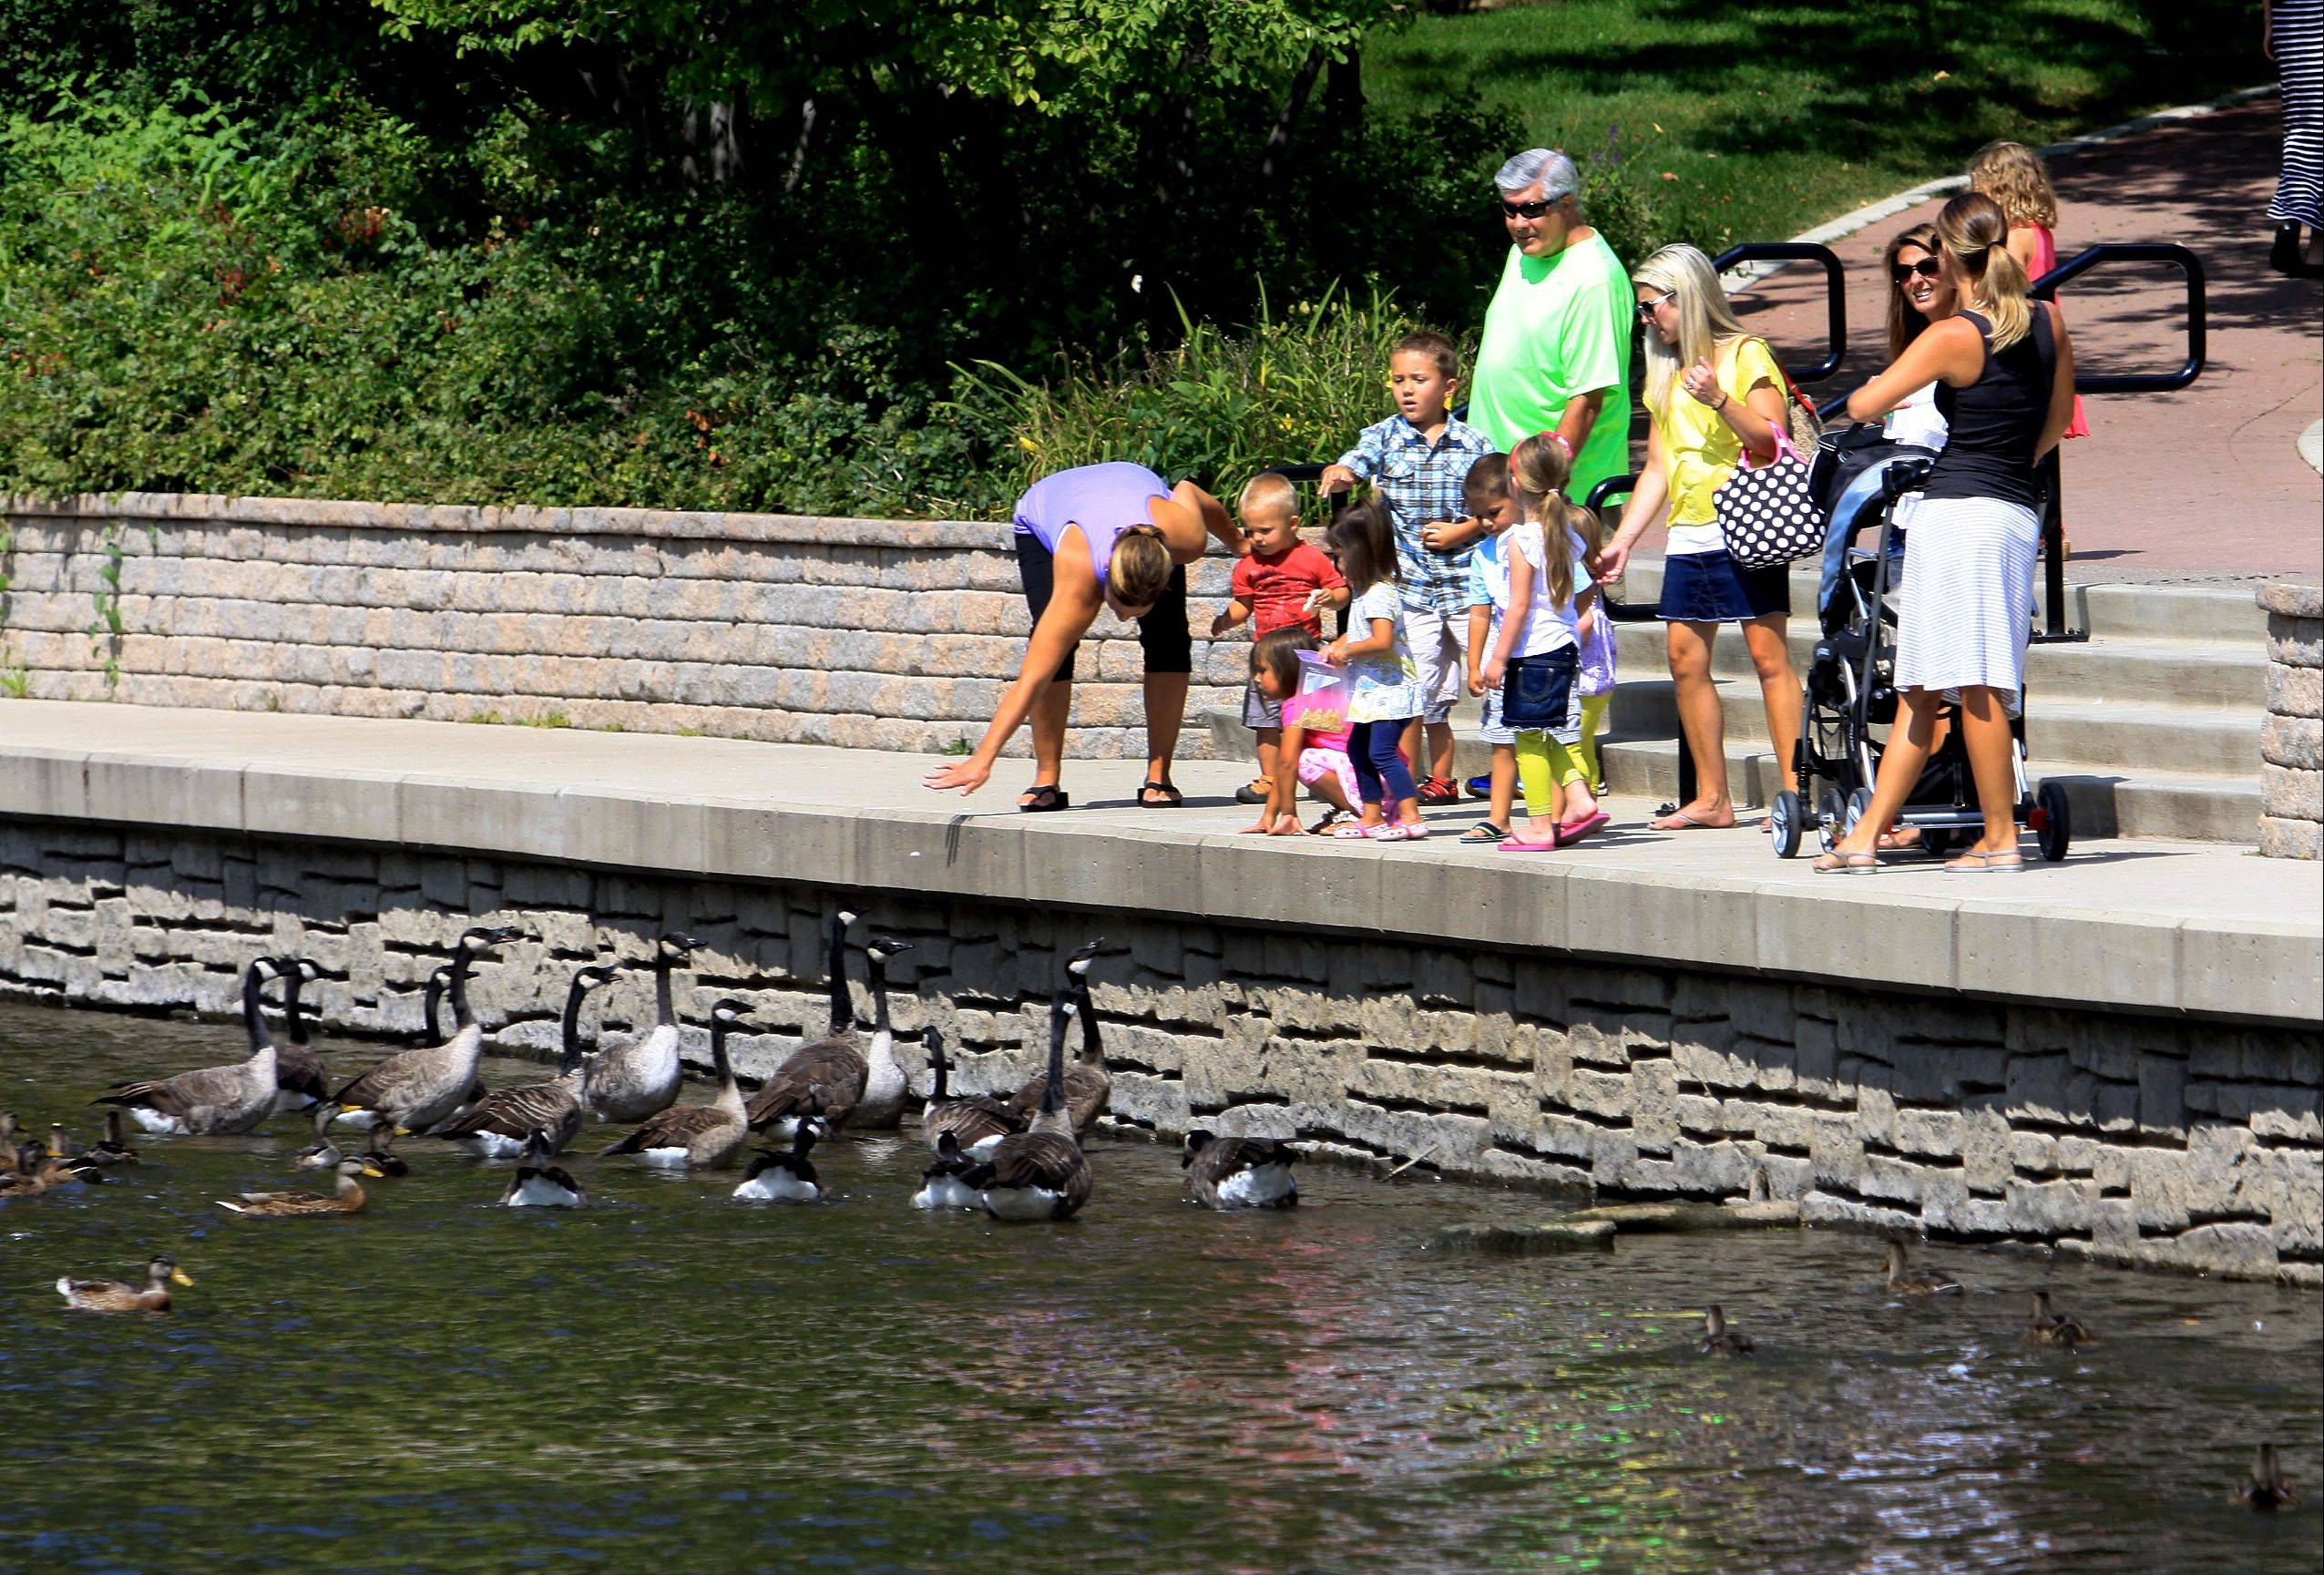 Visitors feed ducks and geese along the Riverwalk in Naperville. Officials have started handing out cards asking people not to feed the wildlife for the sake of both the animals and the river.